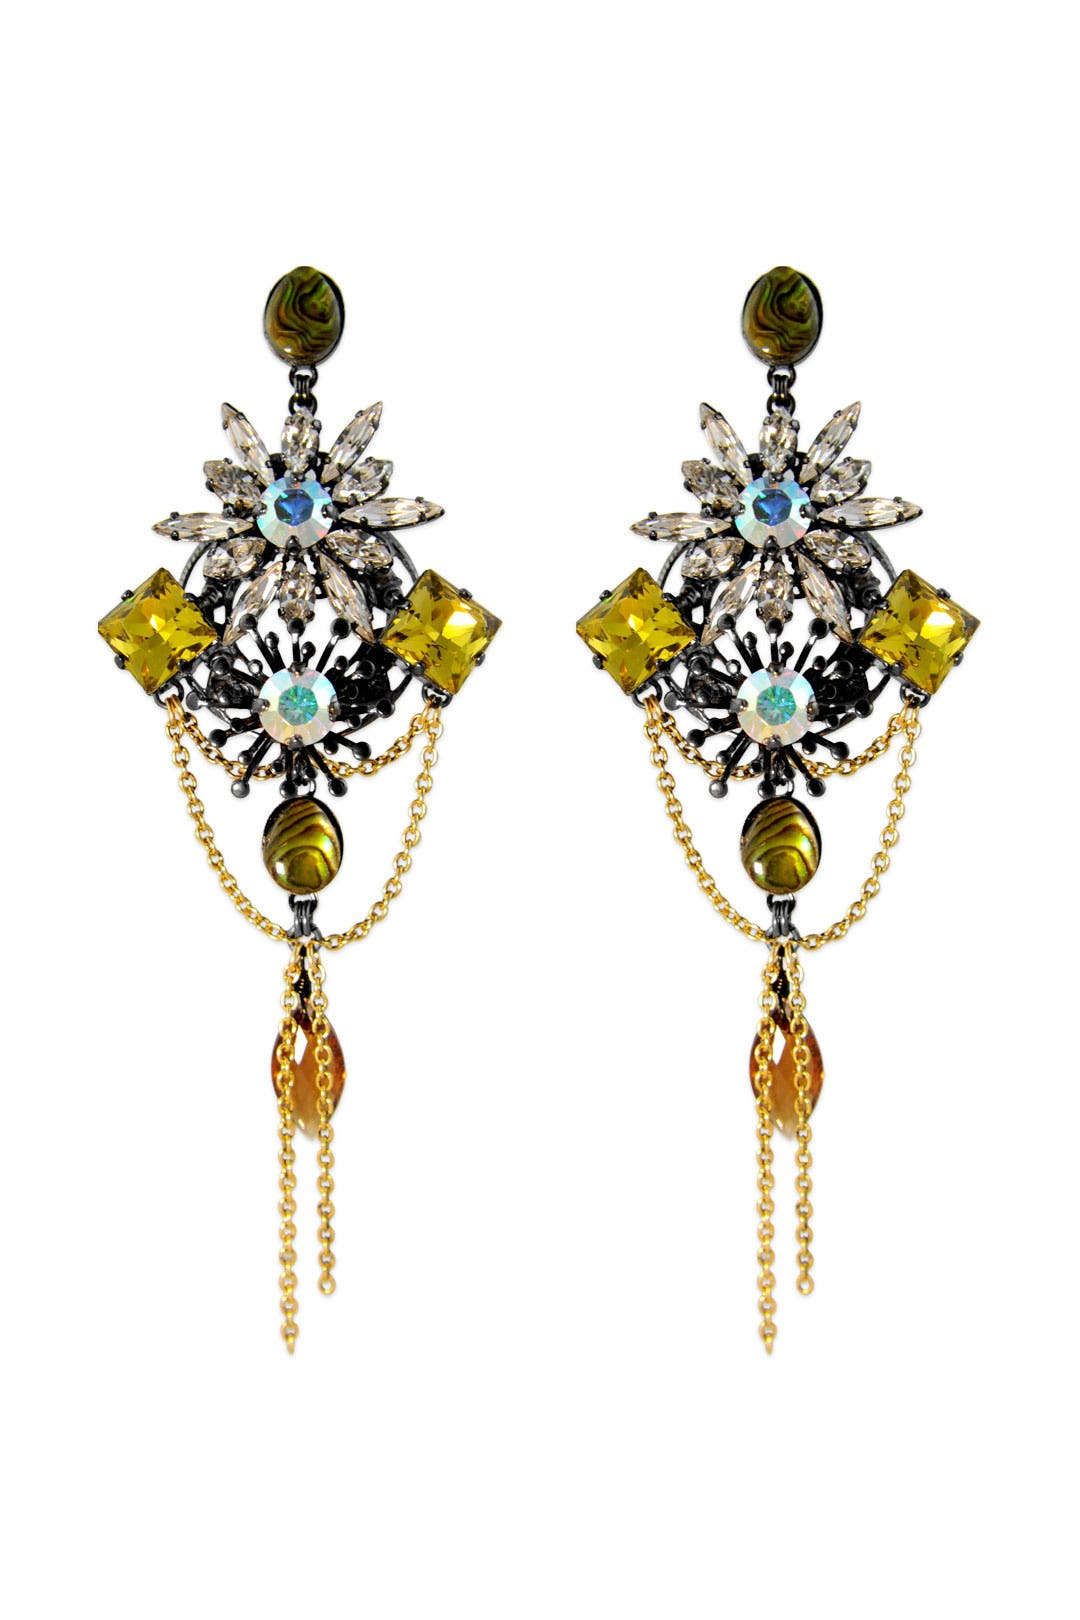 In the Mood For Love Earrings by Erickson Beamon